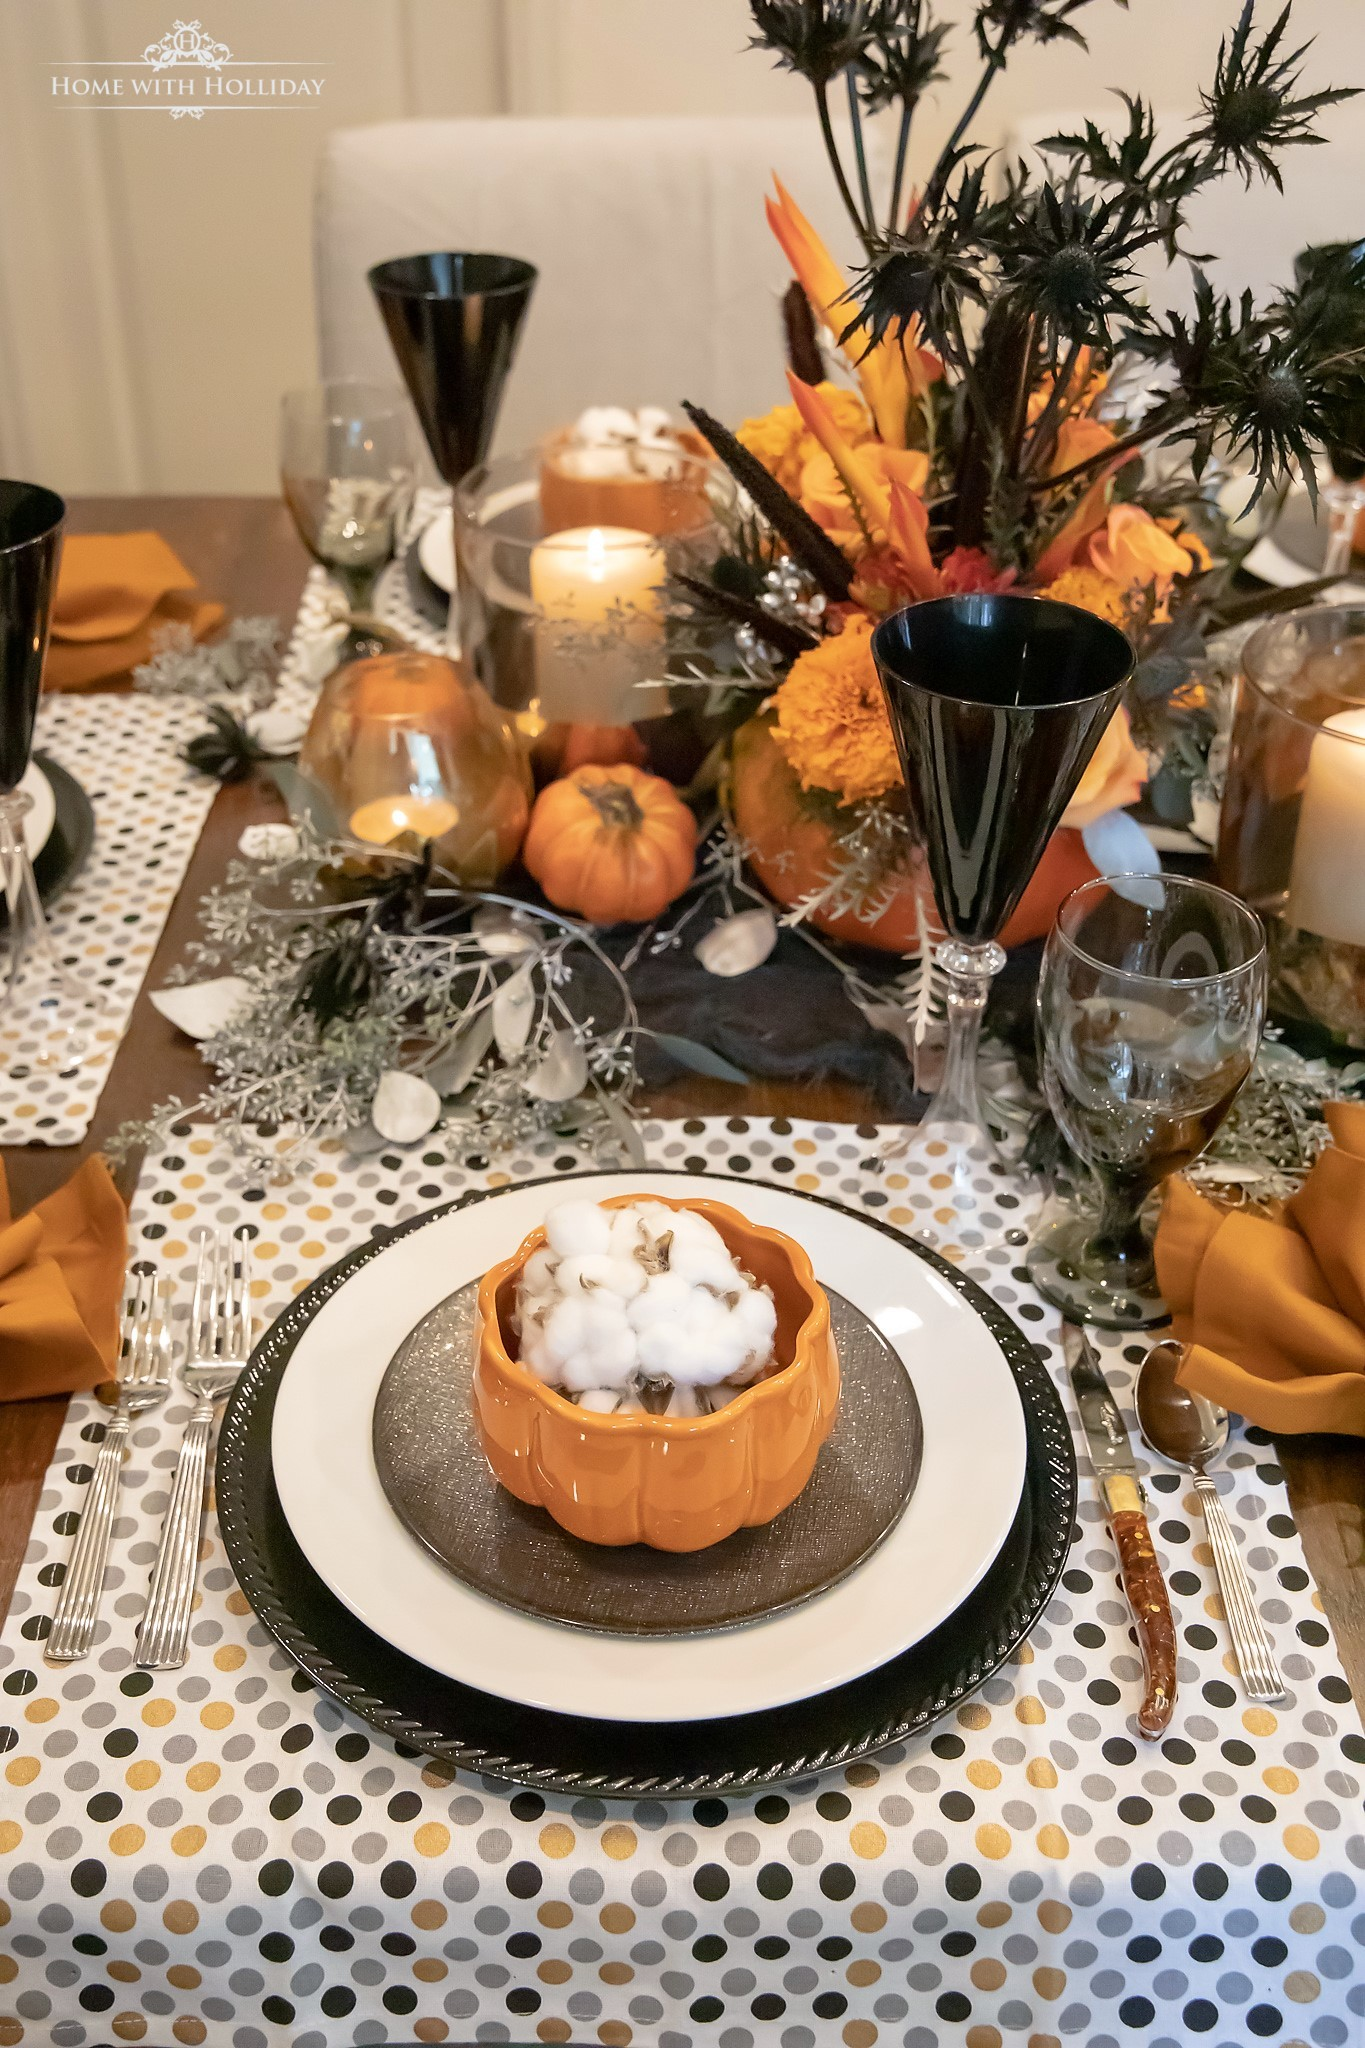 Elegant Halloween Tablescape with Pumpkins - Home with Holliday